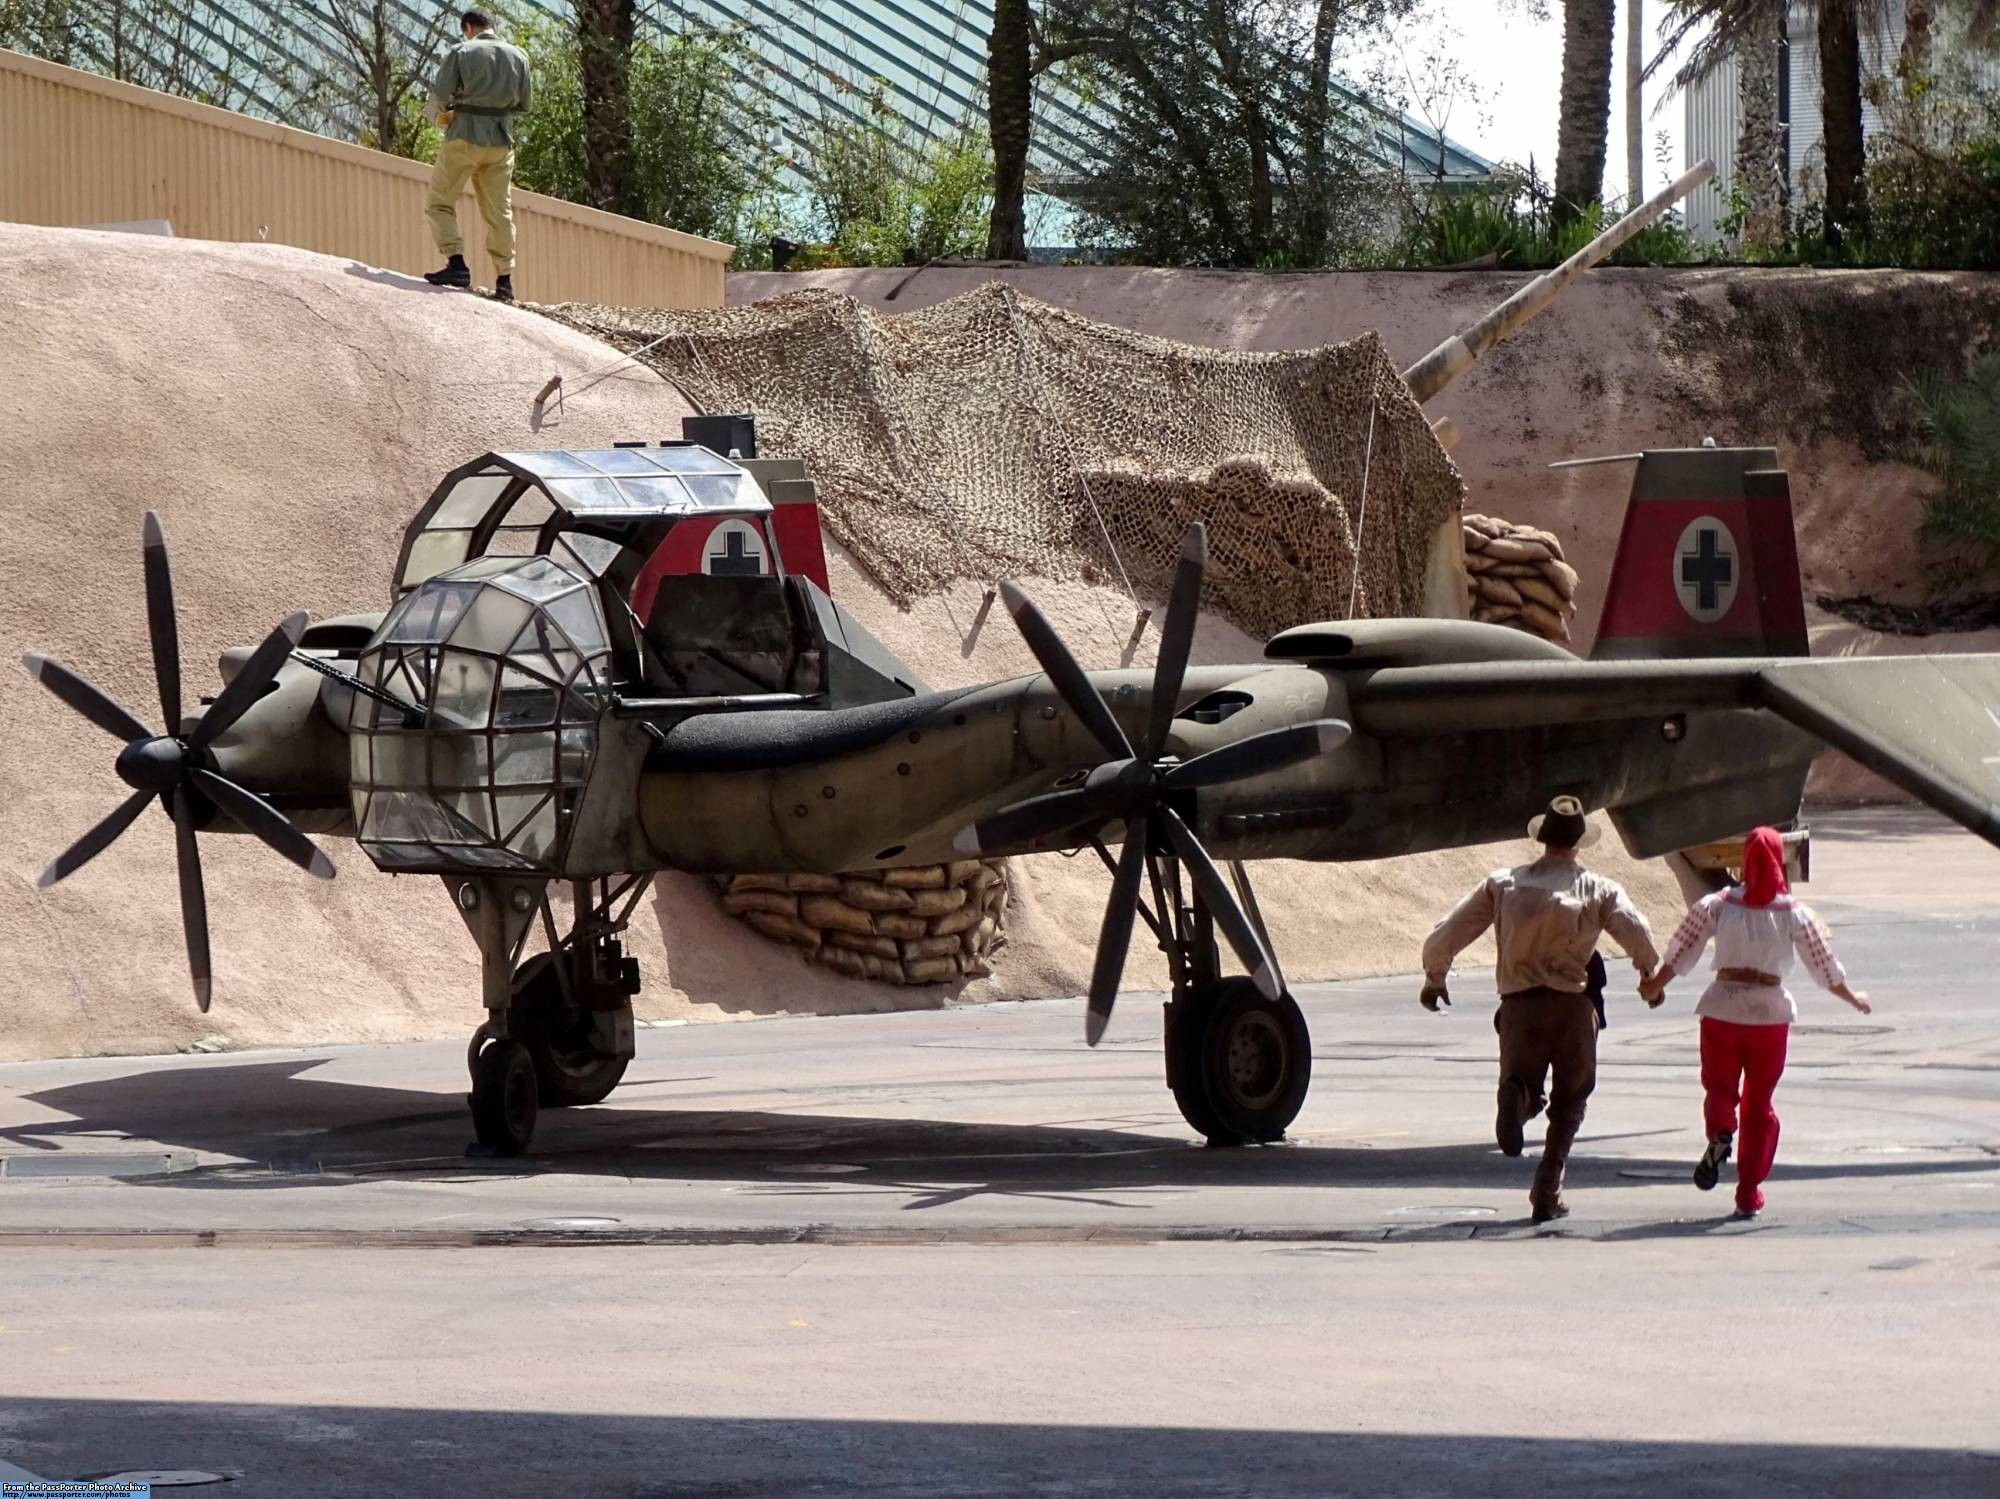 Plan a 'George Lucas'-themed day at Hollywood Studios |PassPorter.com